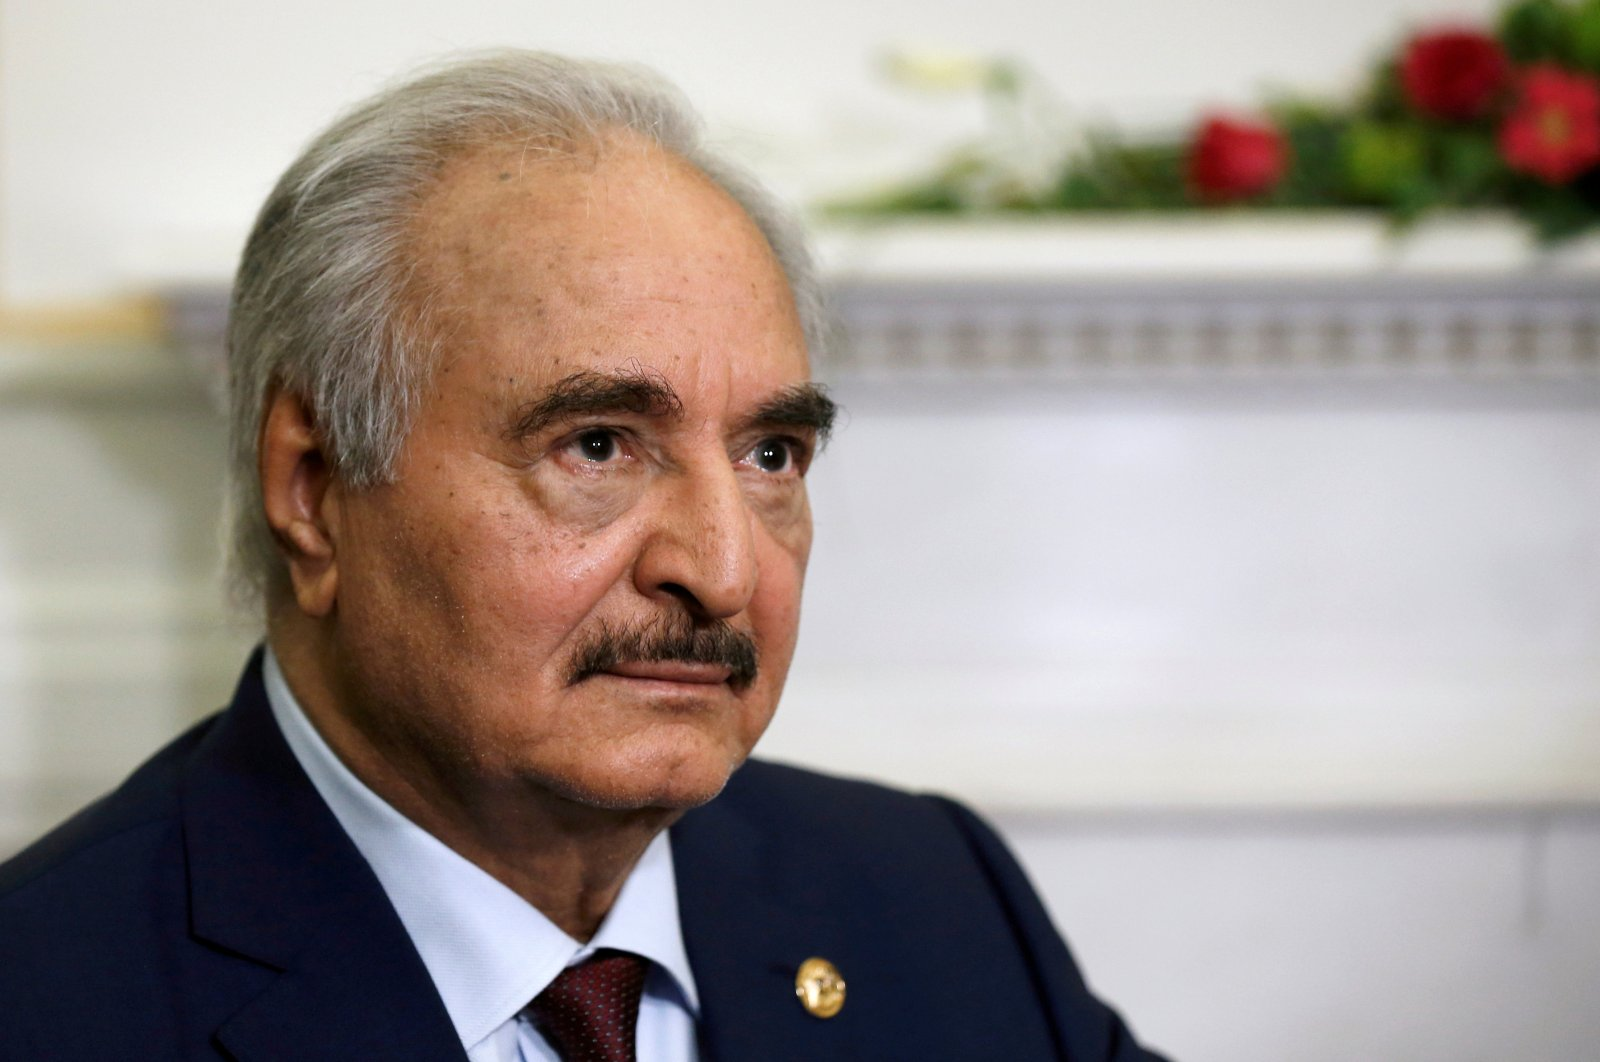 Renegade Gen. Khalifa Haftar meets Greek Foreign Minister Nikos Dendias (not pictured) at the Foreign Ministry in Athens, Greece, Jan. 17, 2020. (Reuters Photo)